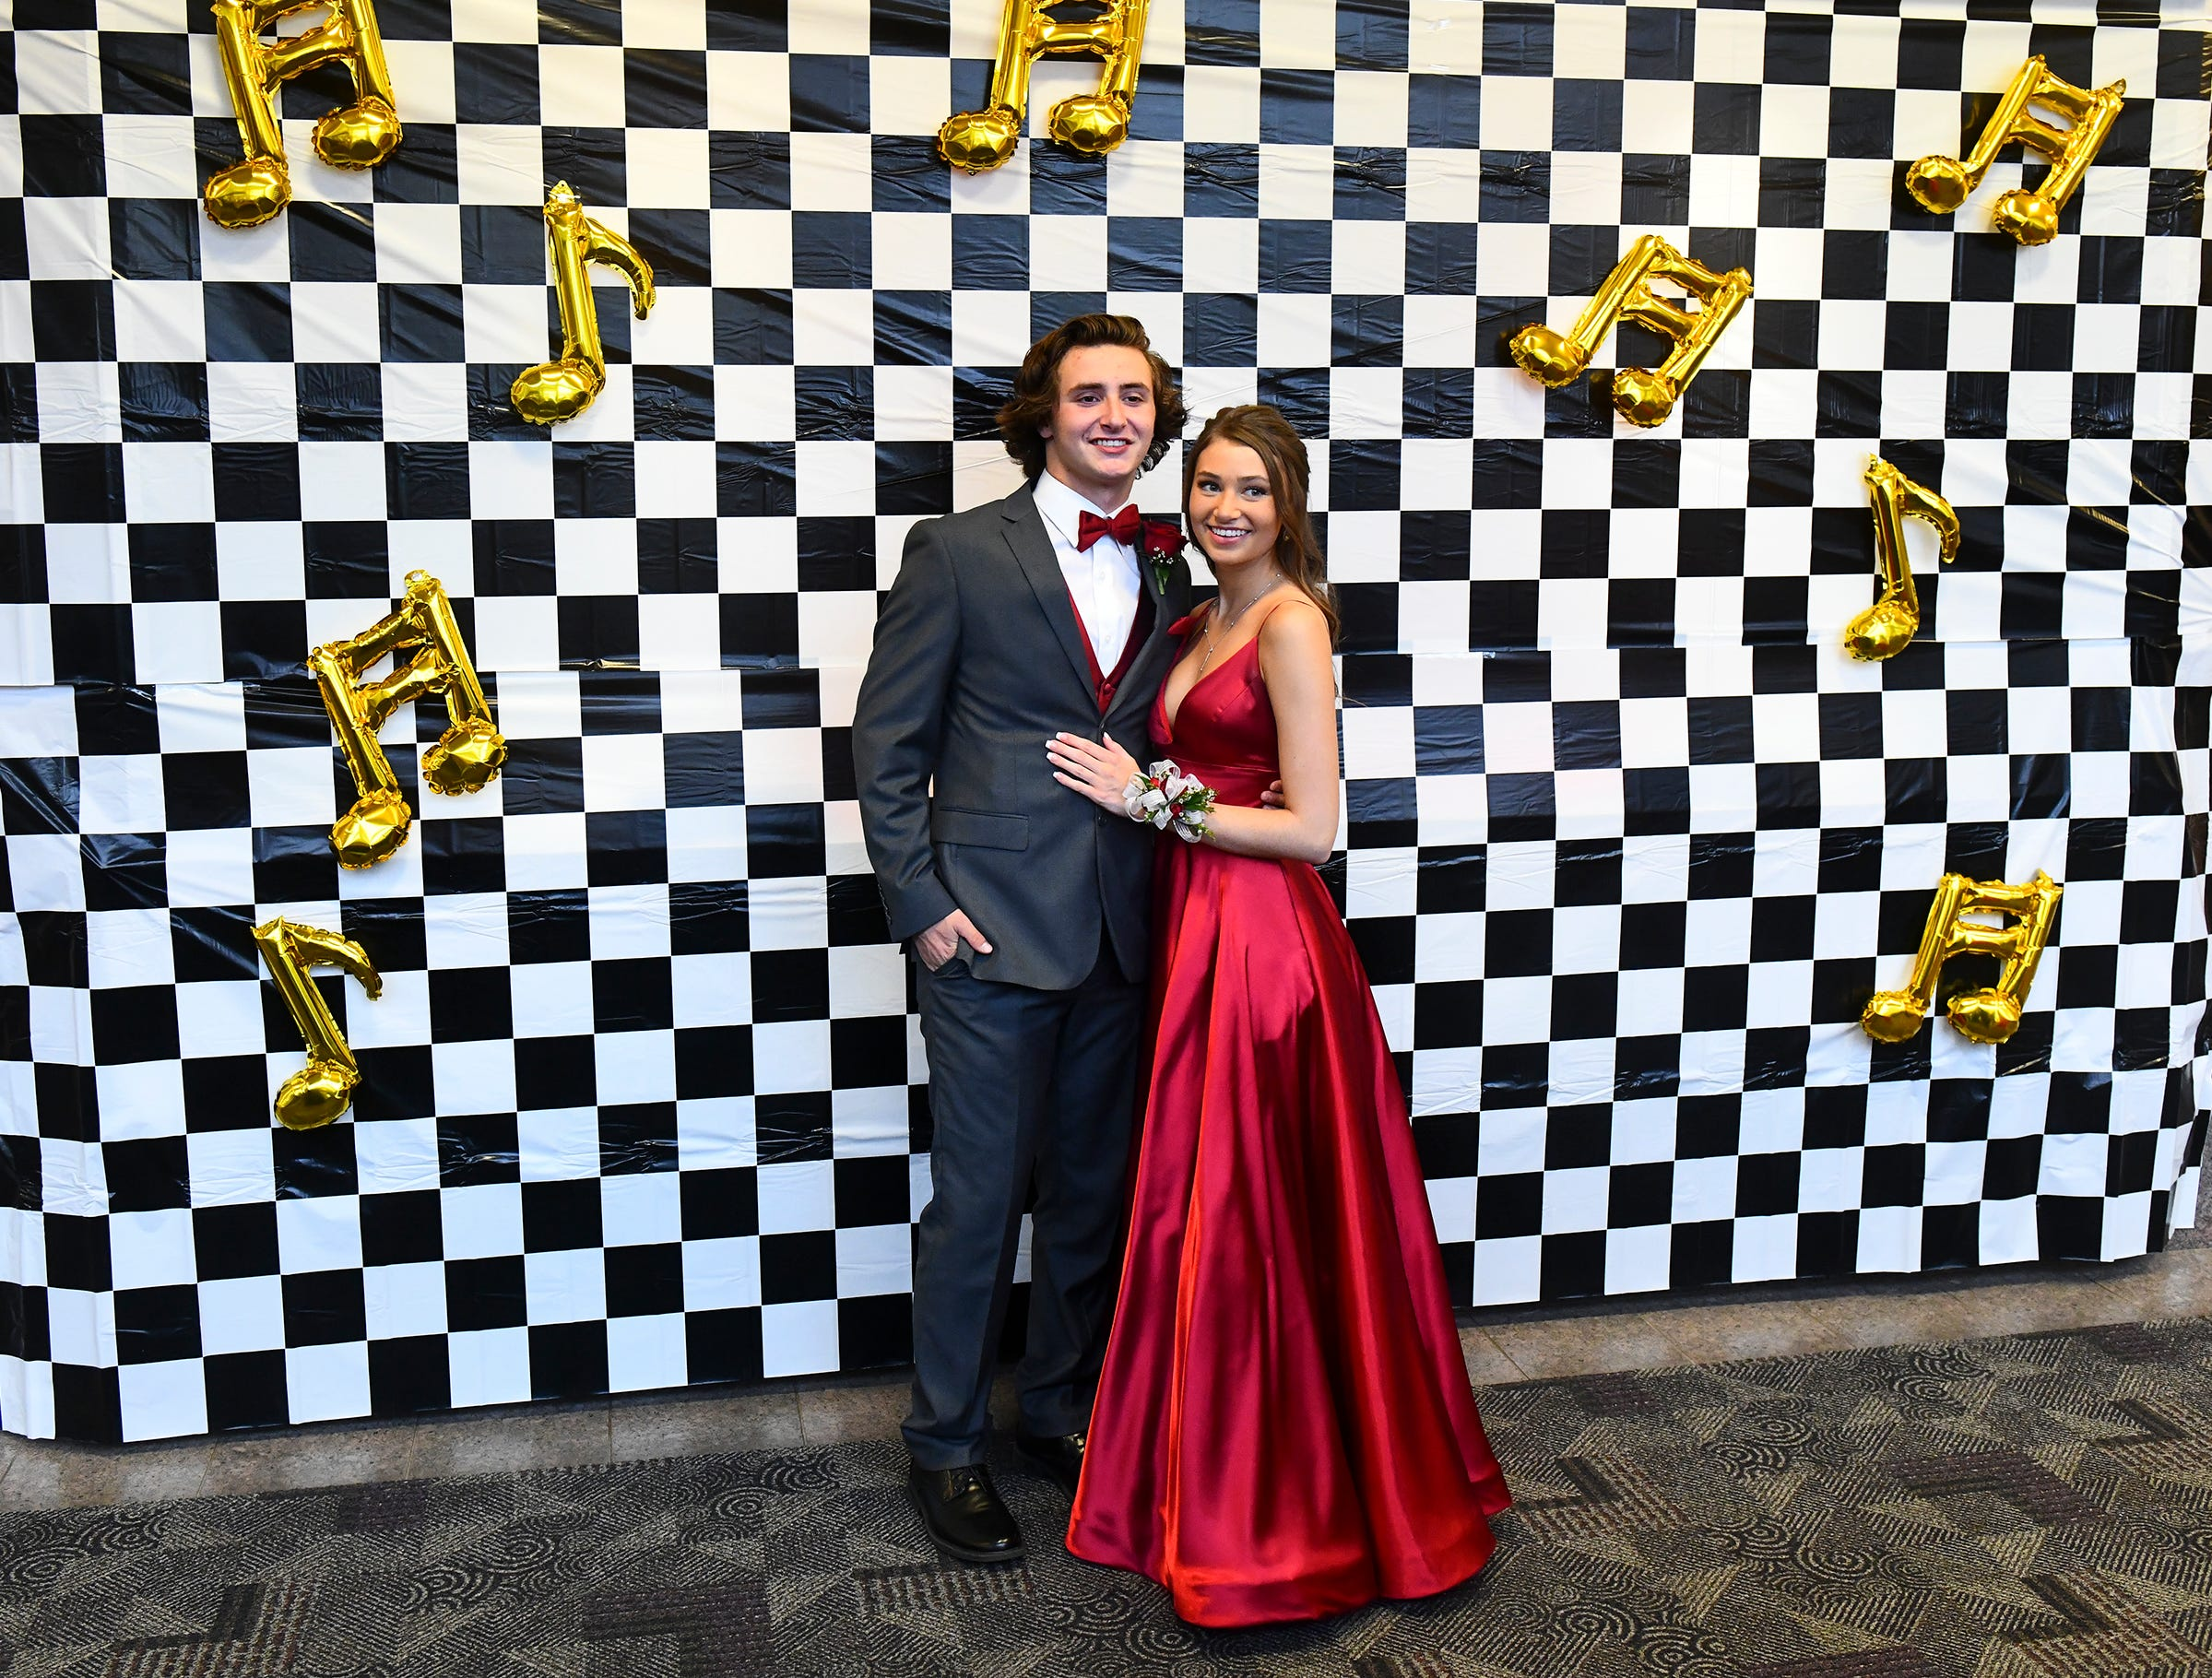 Kalley Vande Vrede and Chris Vance pose in front of a backdrop during Sartell High School prom Saturday, May 4, in St. Cloud.